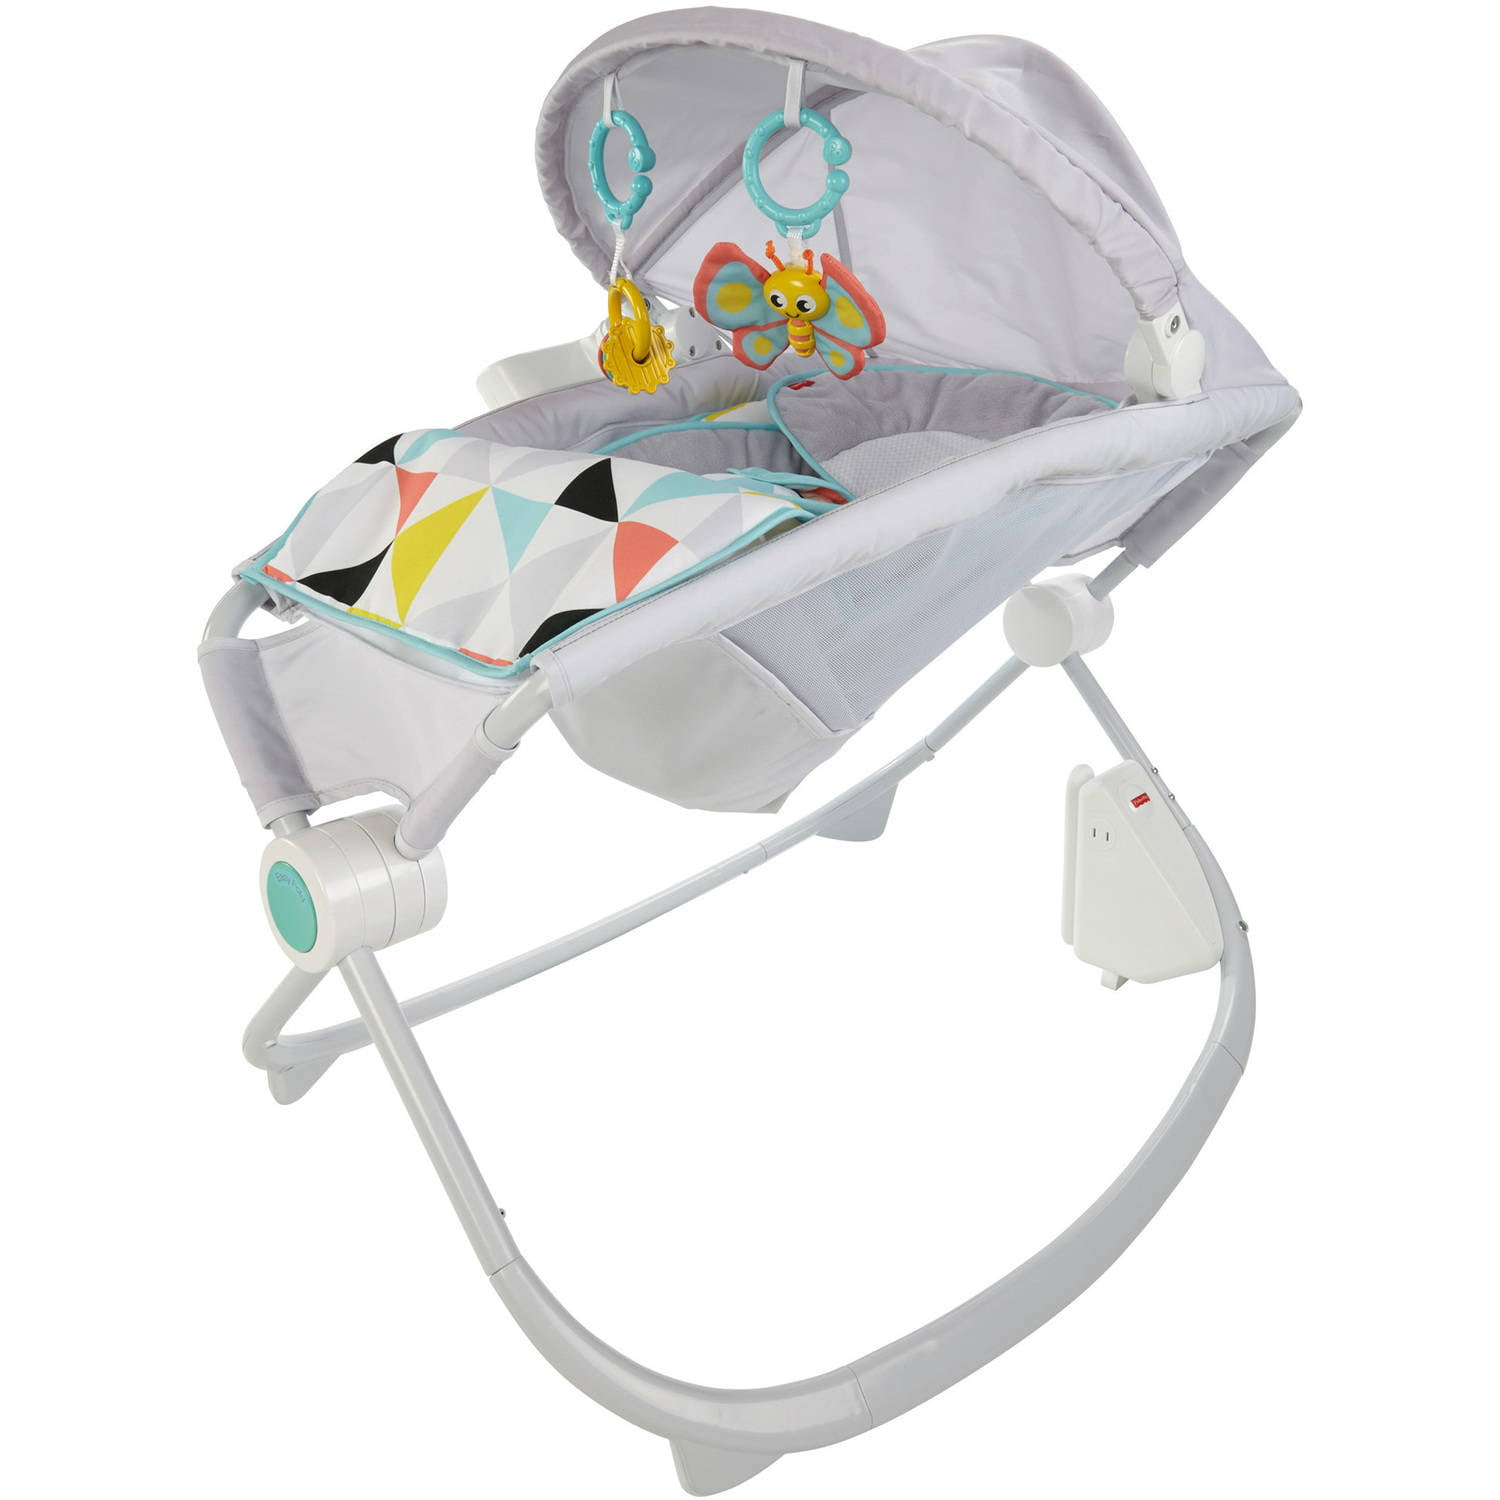 Fisher Price Premium Rock 'n Play Sleeper with Smartconnect, Windmill by Fisher-Price